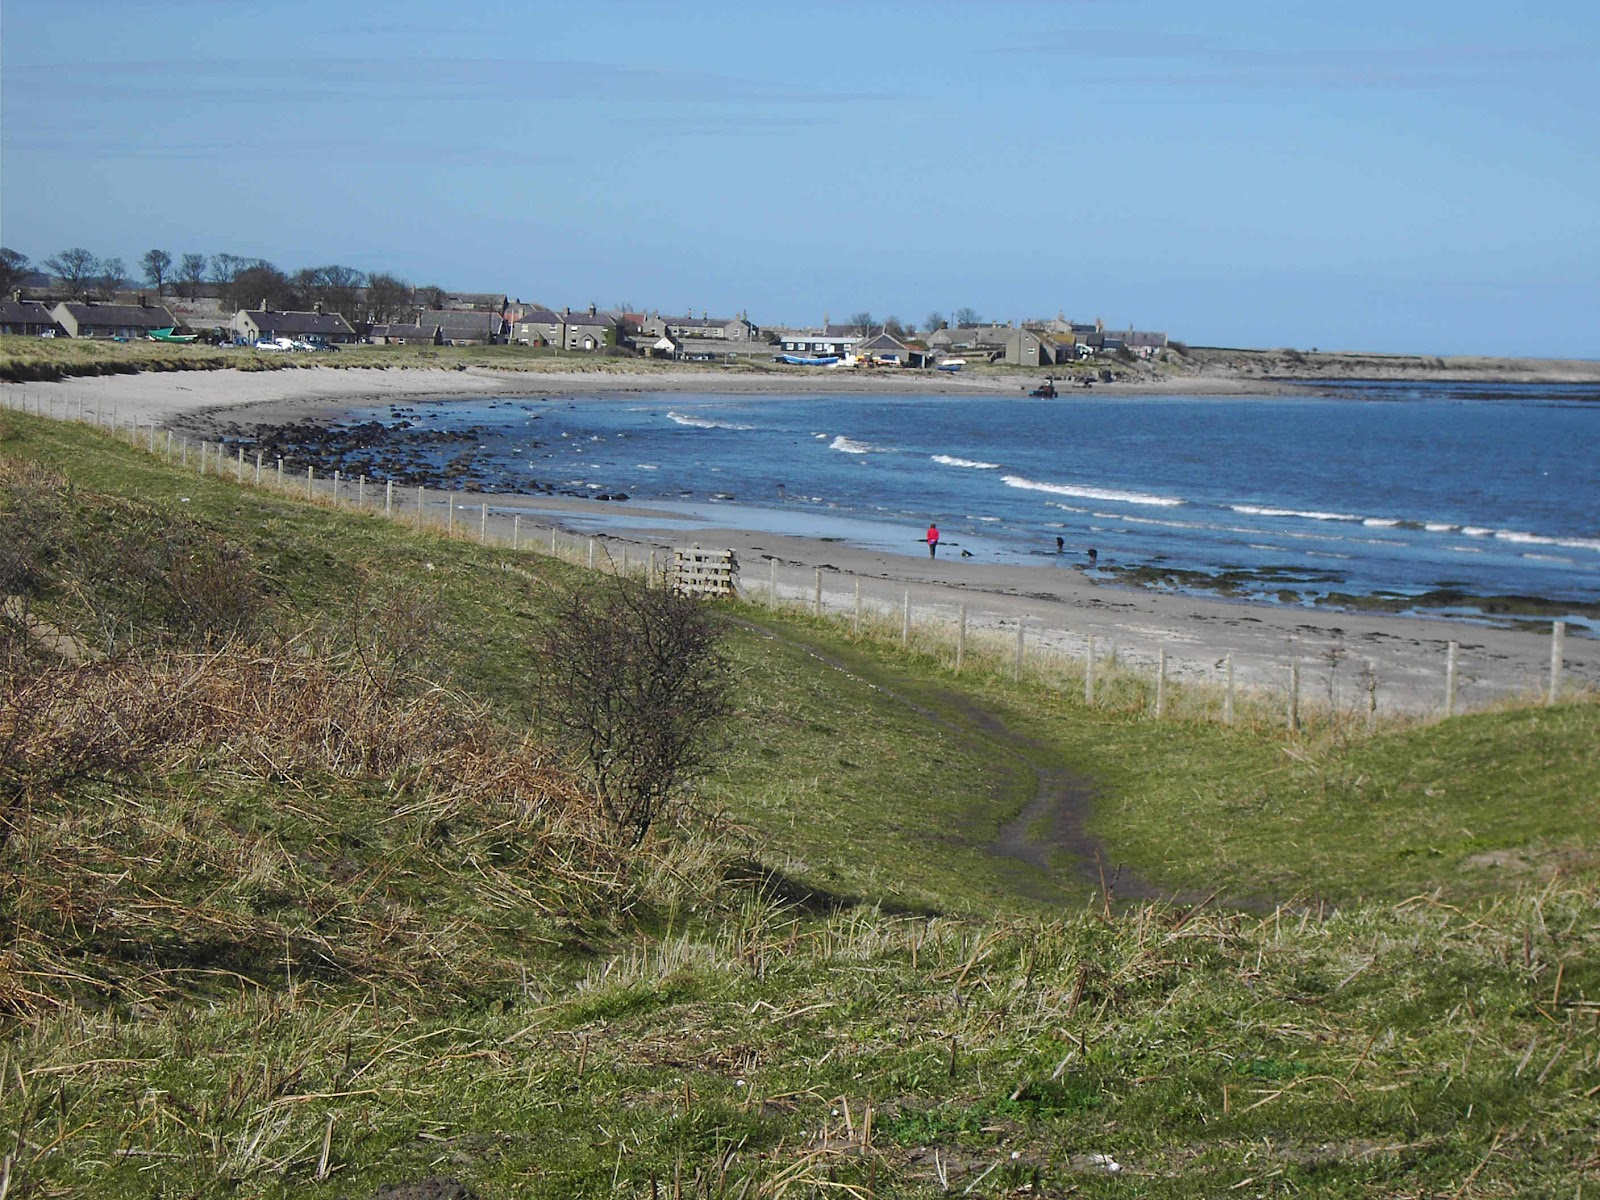 Boulmer Ounced Boomer Is A Very Small Fishing Village Set Right On The Northumberland Coast Roximately 6 Miles East Of Market Town